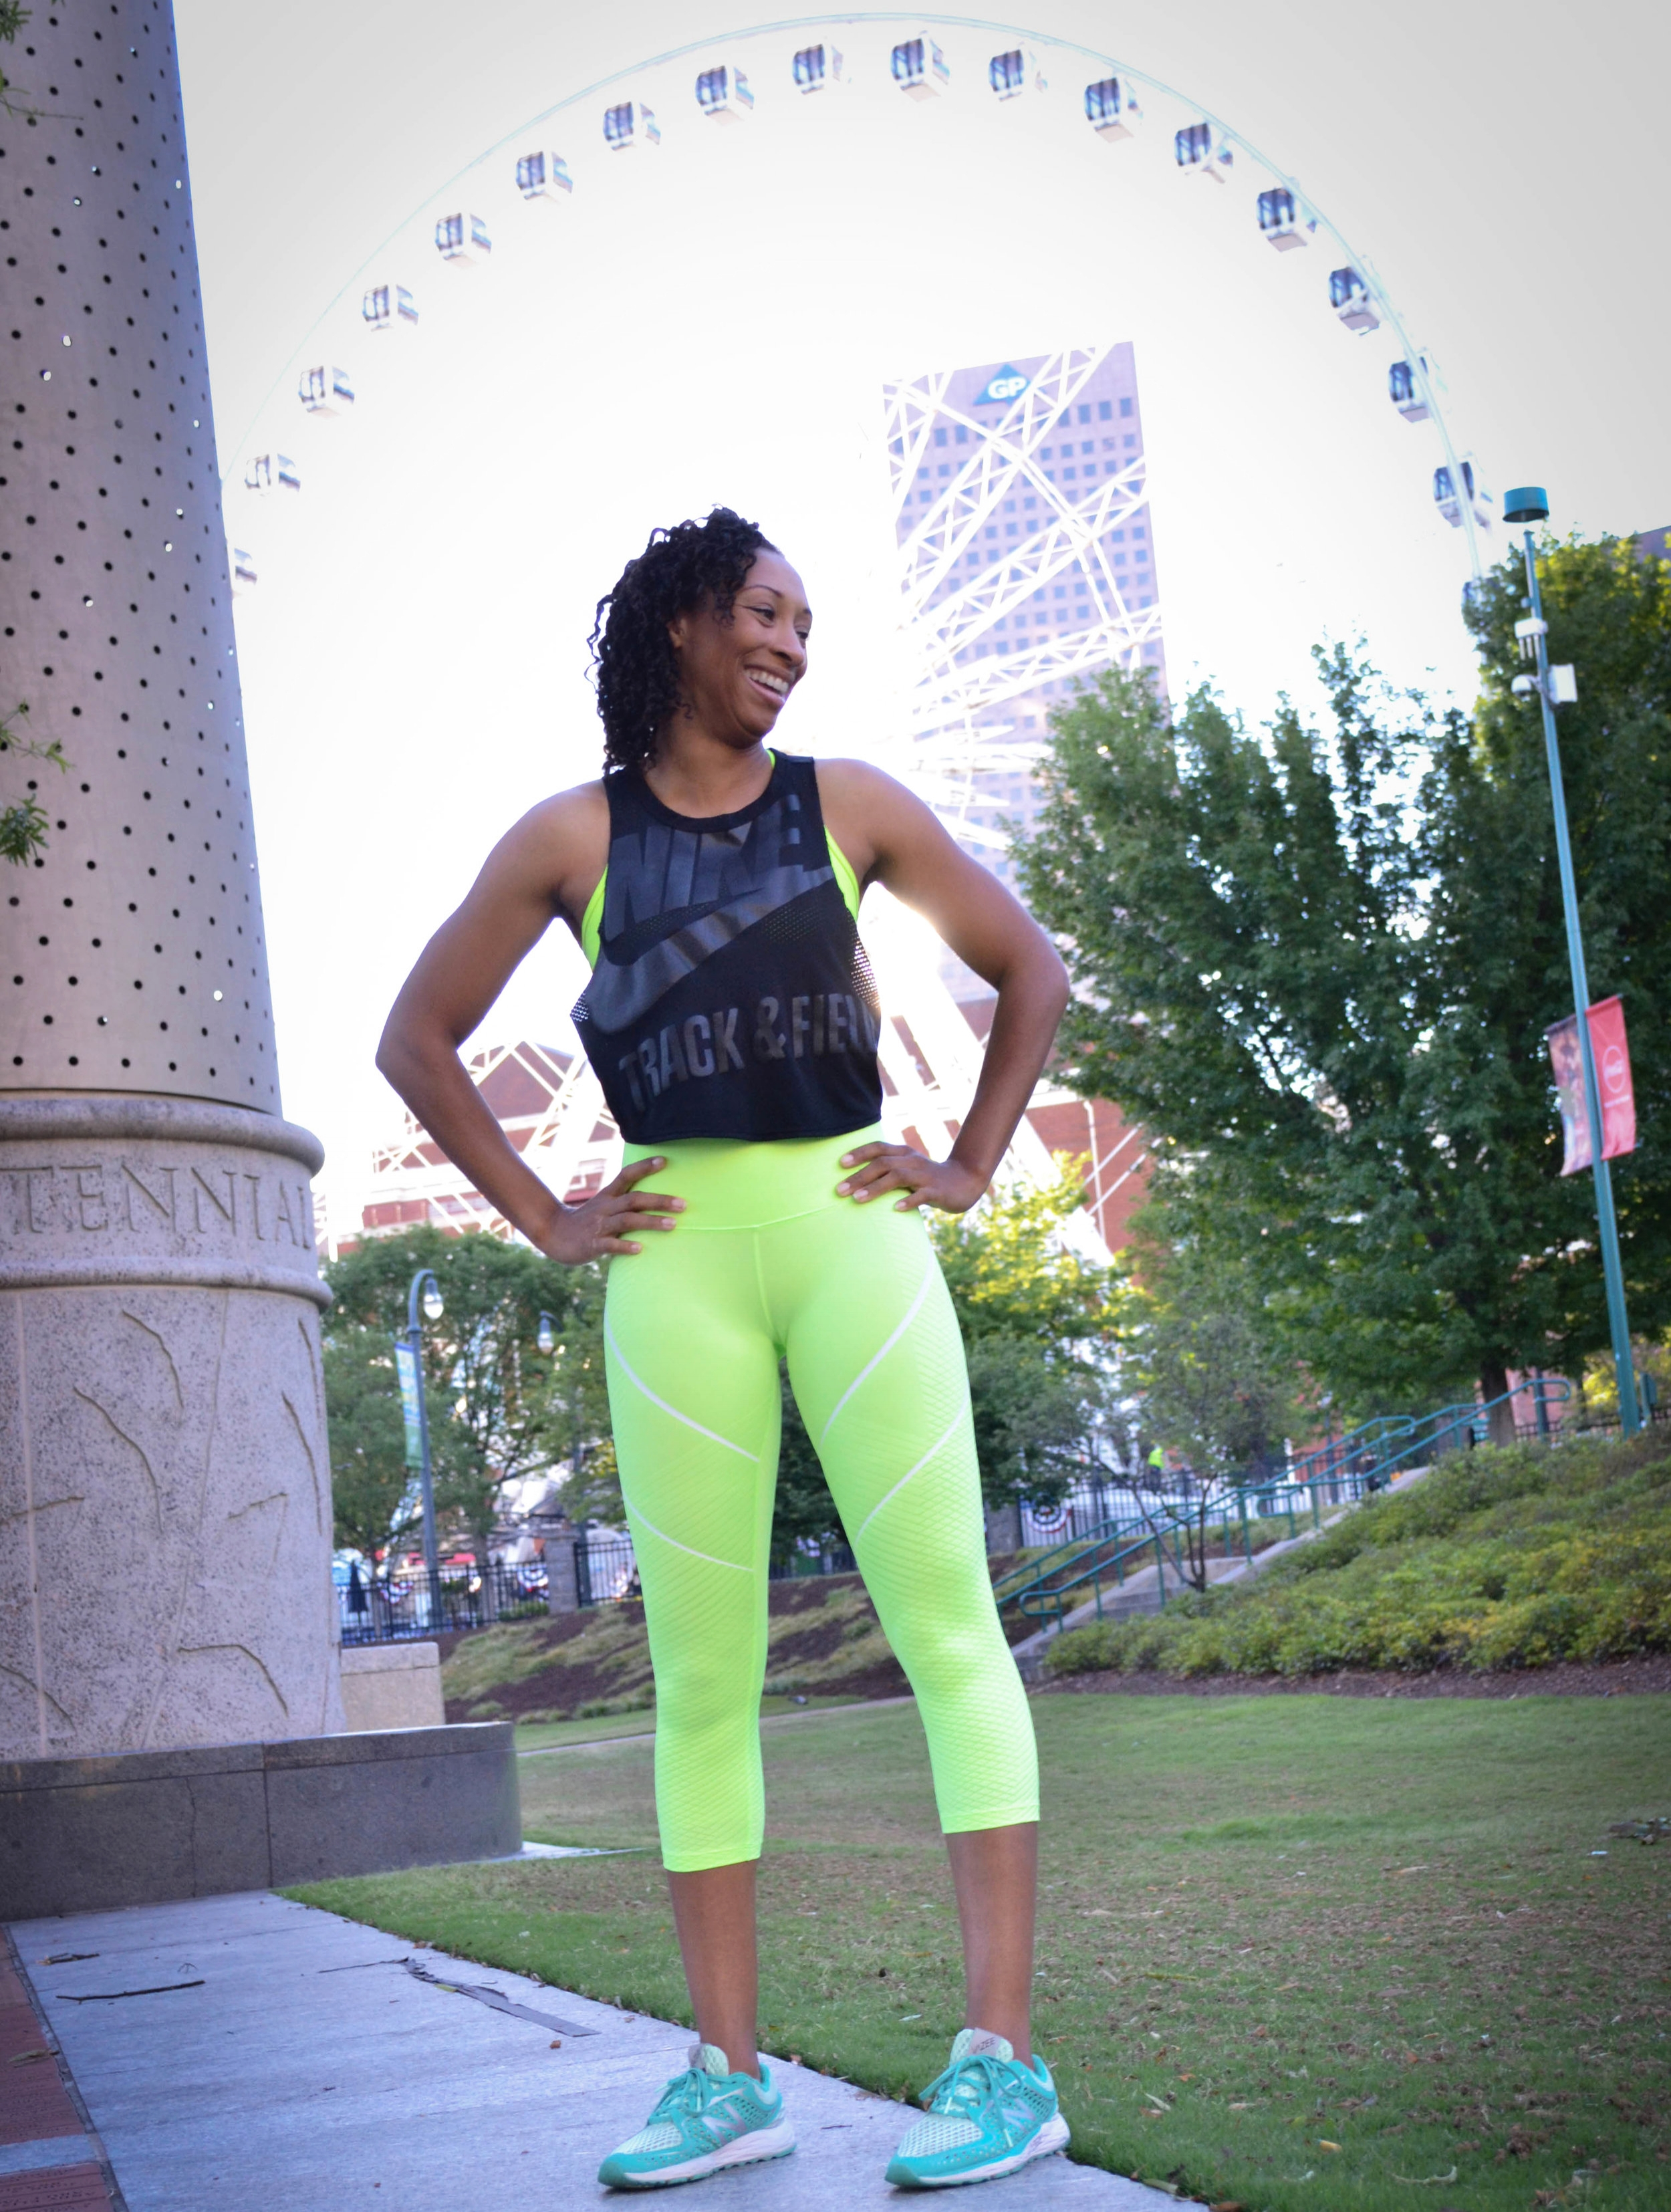 Hey, I'm Lashawn (or Shawn, or LGee, for short.) - I am a Certified Fitness Coach, former (forever) track and field athlete (Go Heels!), track and field coach, speaker, announcer, and Hall of Famer. I love the feeling of accomplishing a great sweat session (hello, endorphins!), good FLAVORFUL food, making people laugh (and cupcakes--and wine. No, I will not lie, LOL). After injuries and surgeries, I decided to hang up my spikes and coach student-athletes and overwhelmed women to hone in on their own